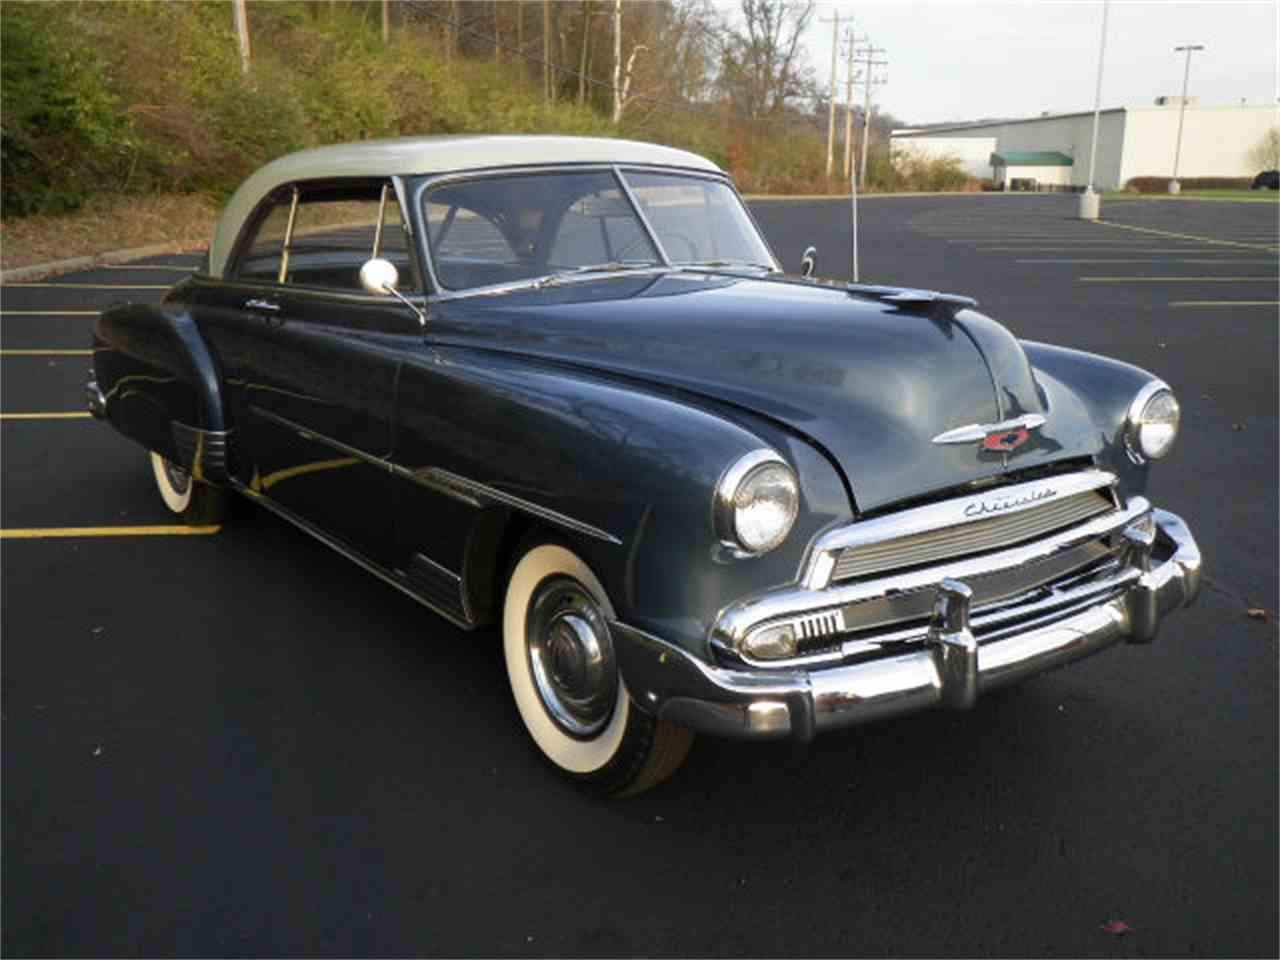 All Chevy 1951 chevy deluxe for sale : 1951 Chevrolet Deluxe for Sale | ClassicCars.com | CC-1026315